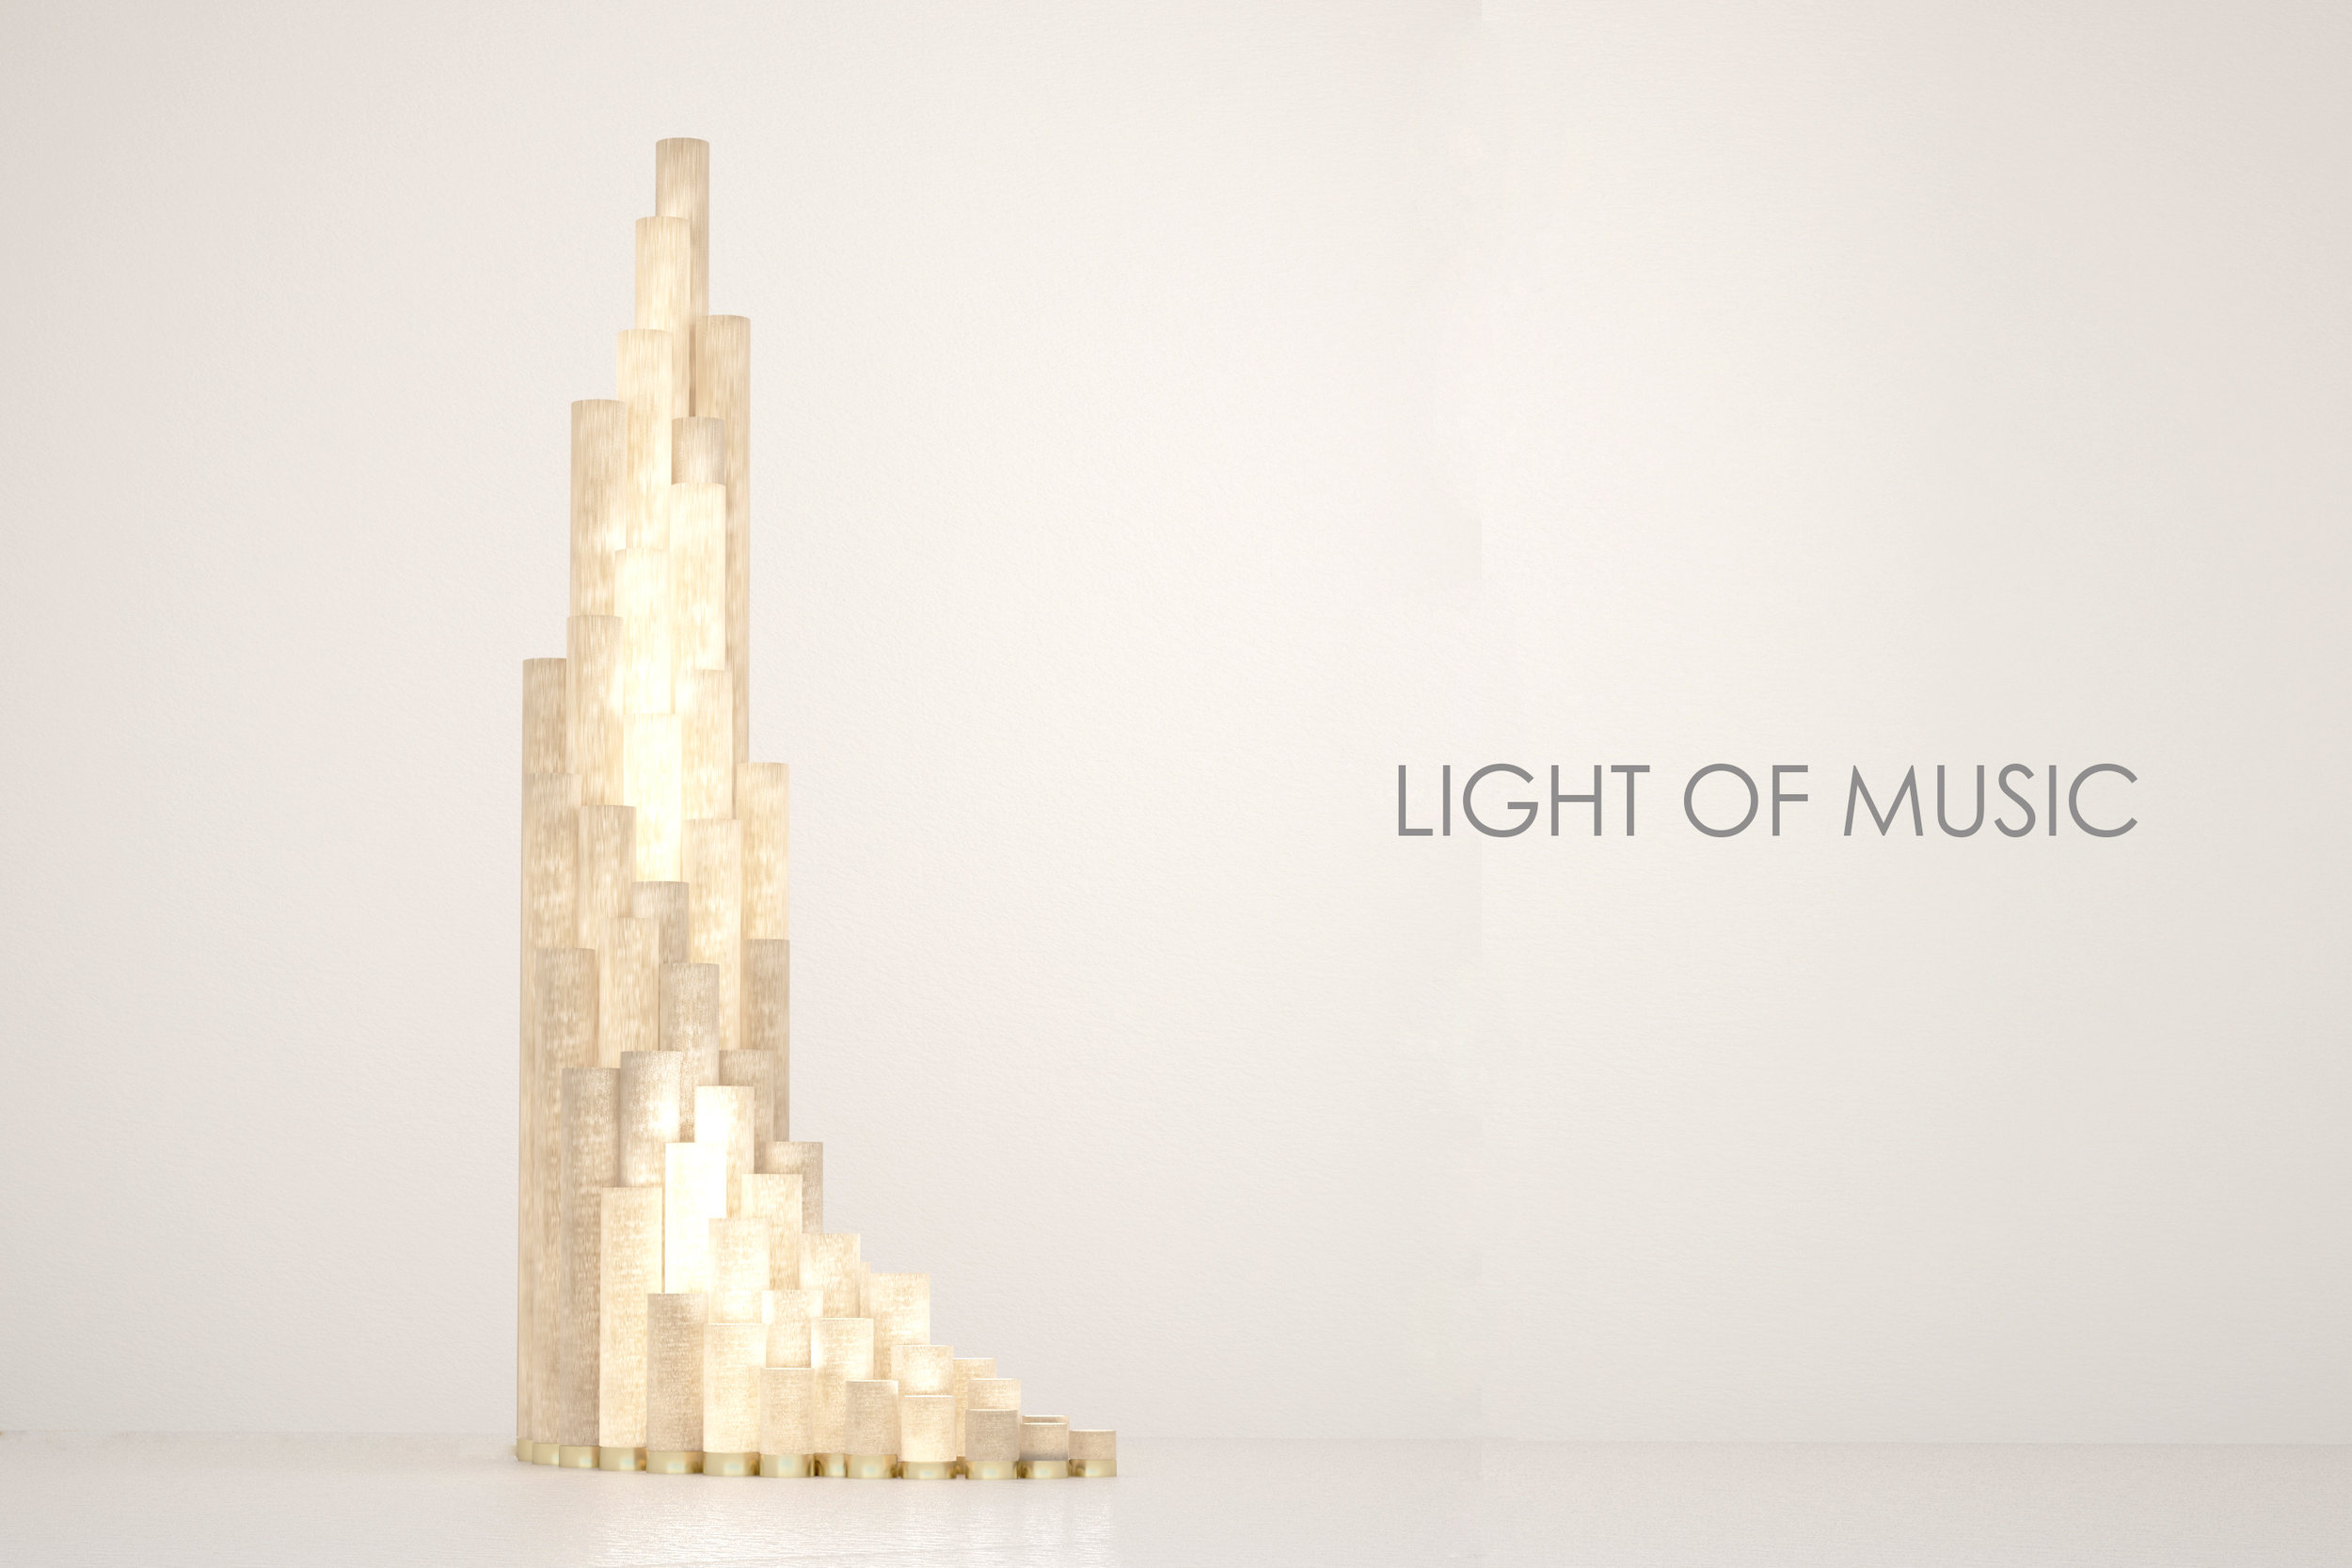 LightOfMusic_ST_RE_1.jpg